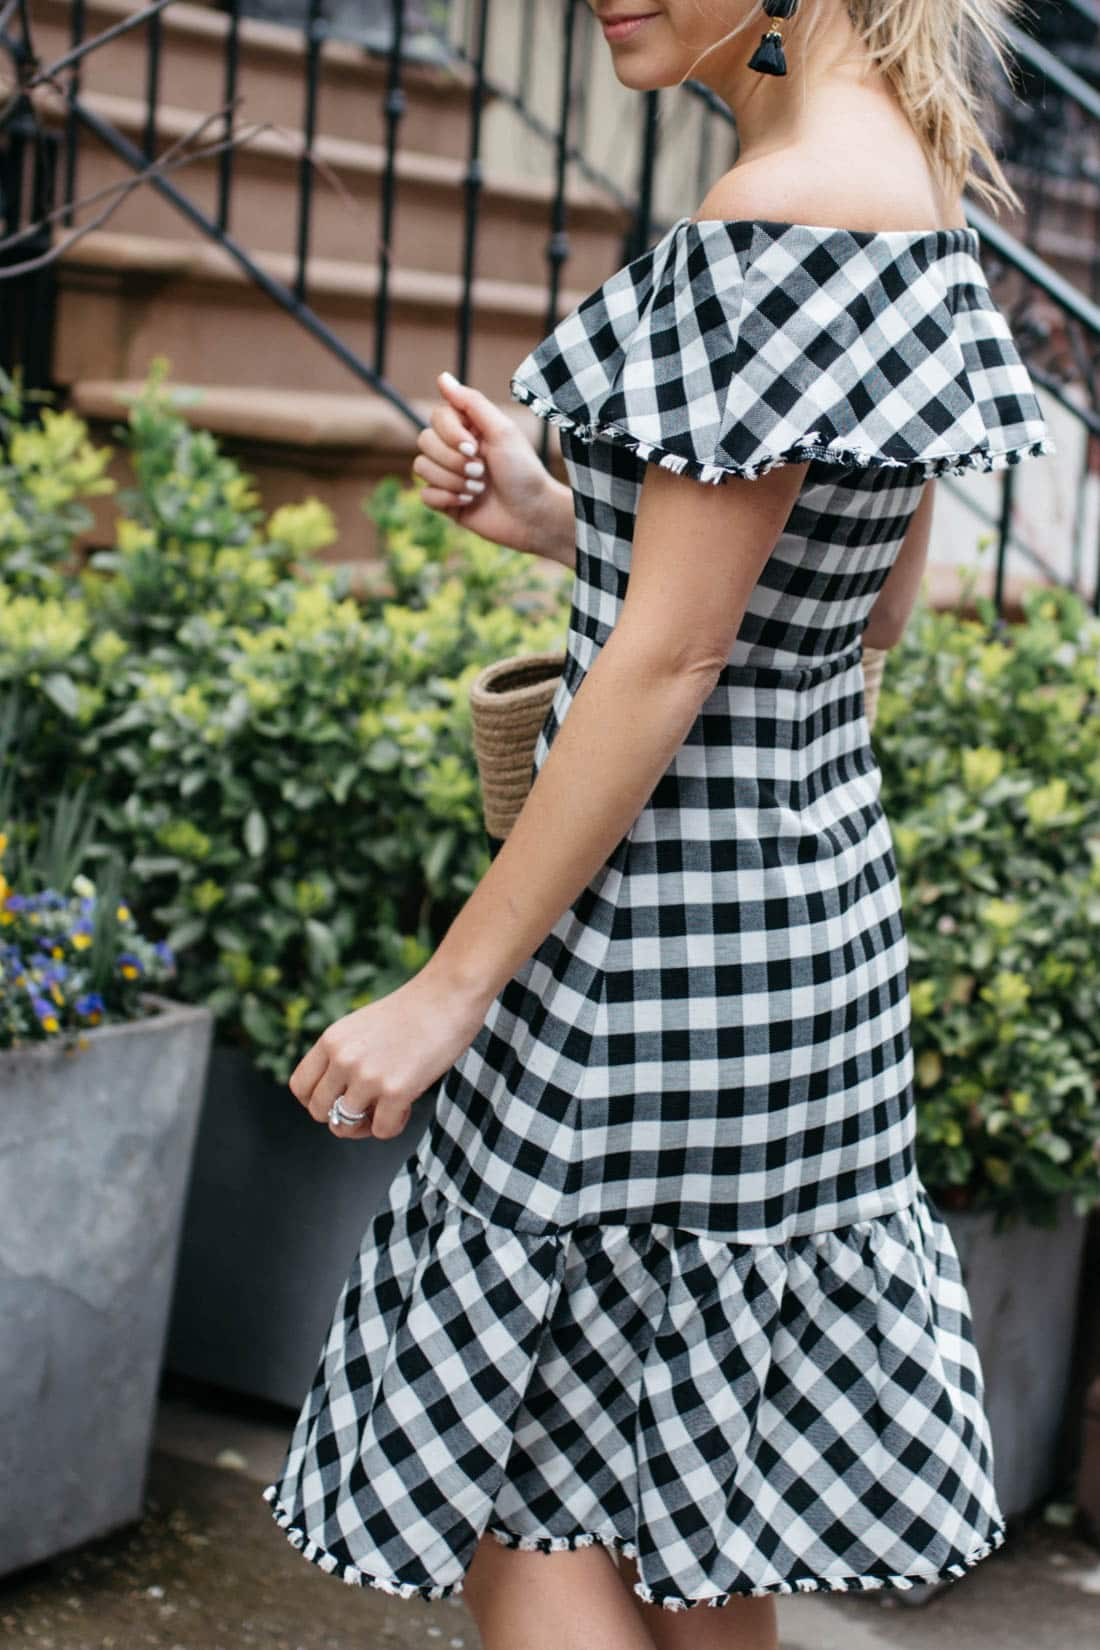 974bc30aaab07 Off the shoulder dress · Midi Dress · Ann Taylor Gingham · Styled Snapshots